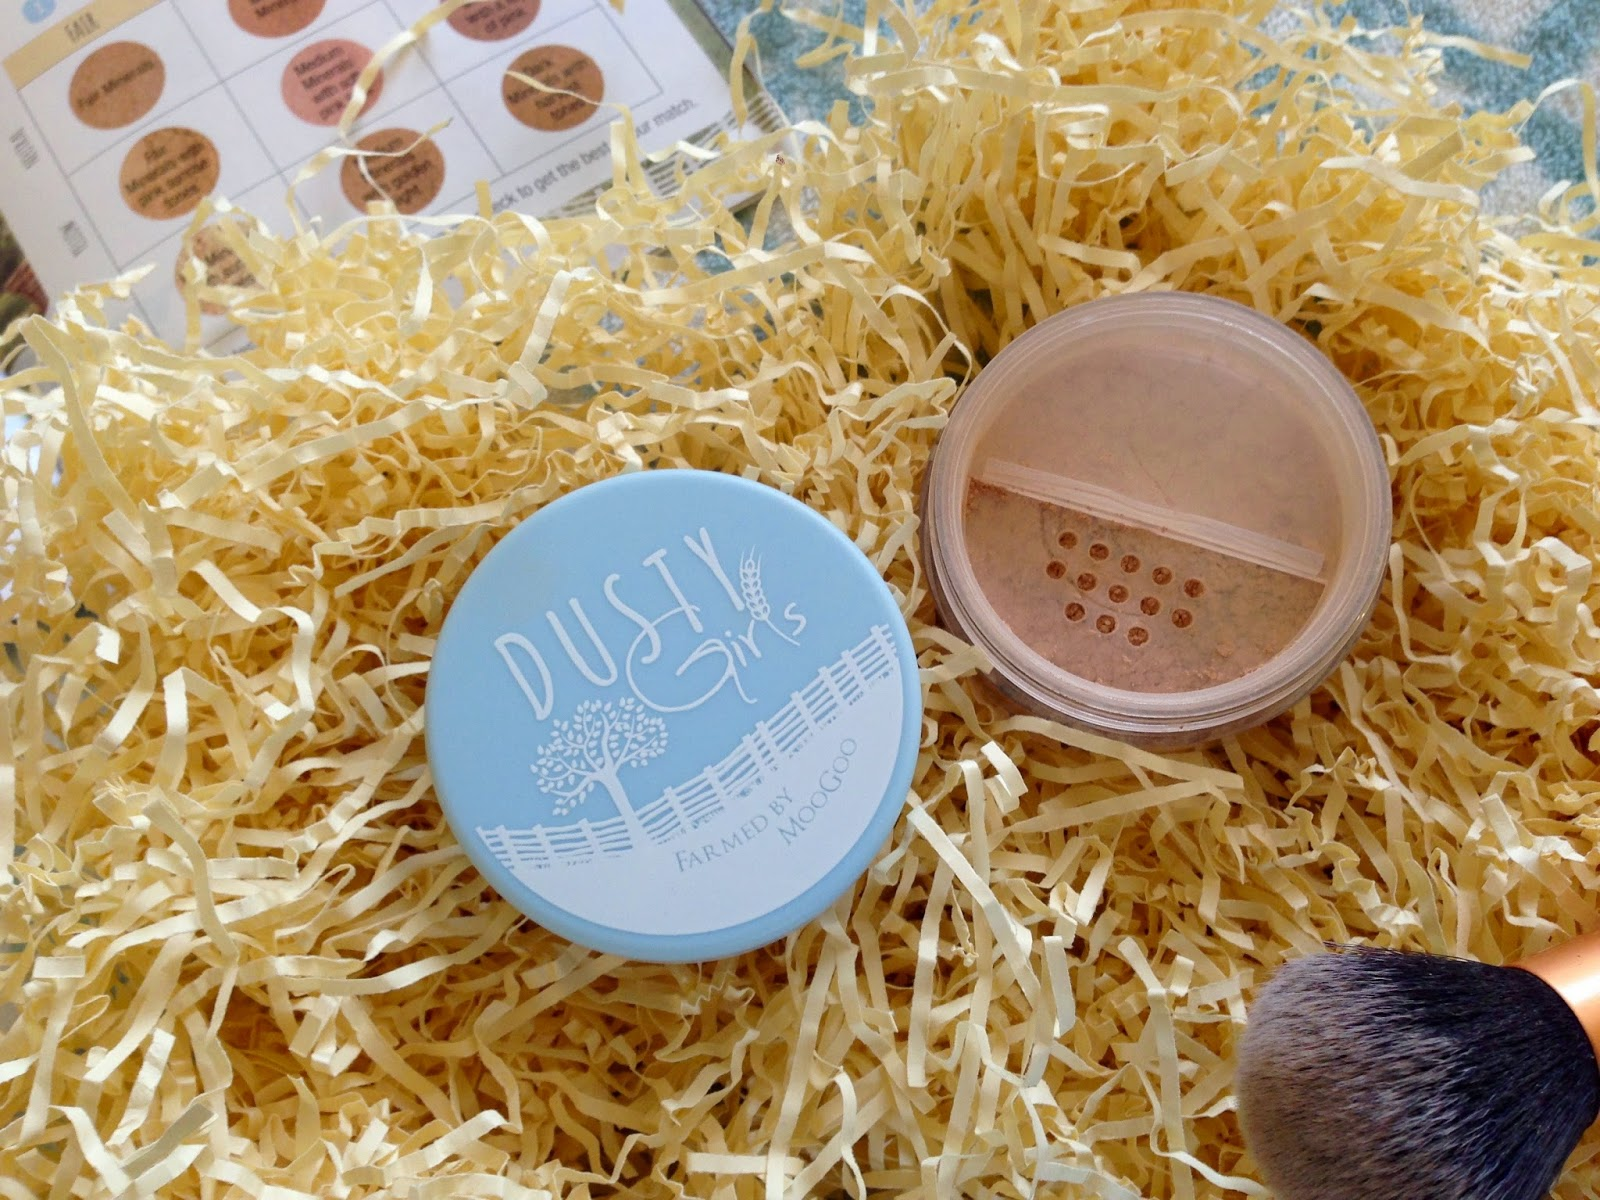 Dusty Girls Mineral Foundation Review MooGoo